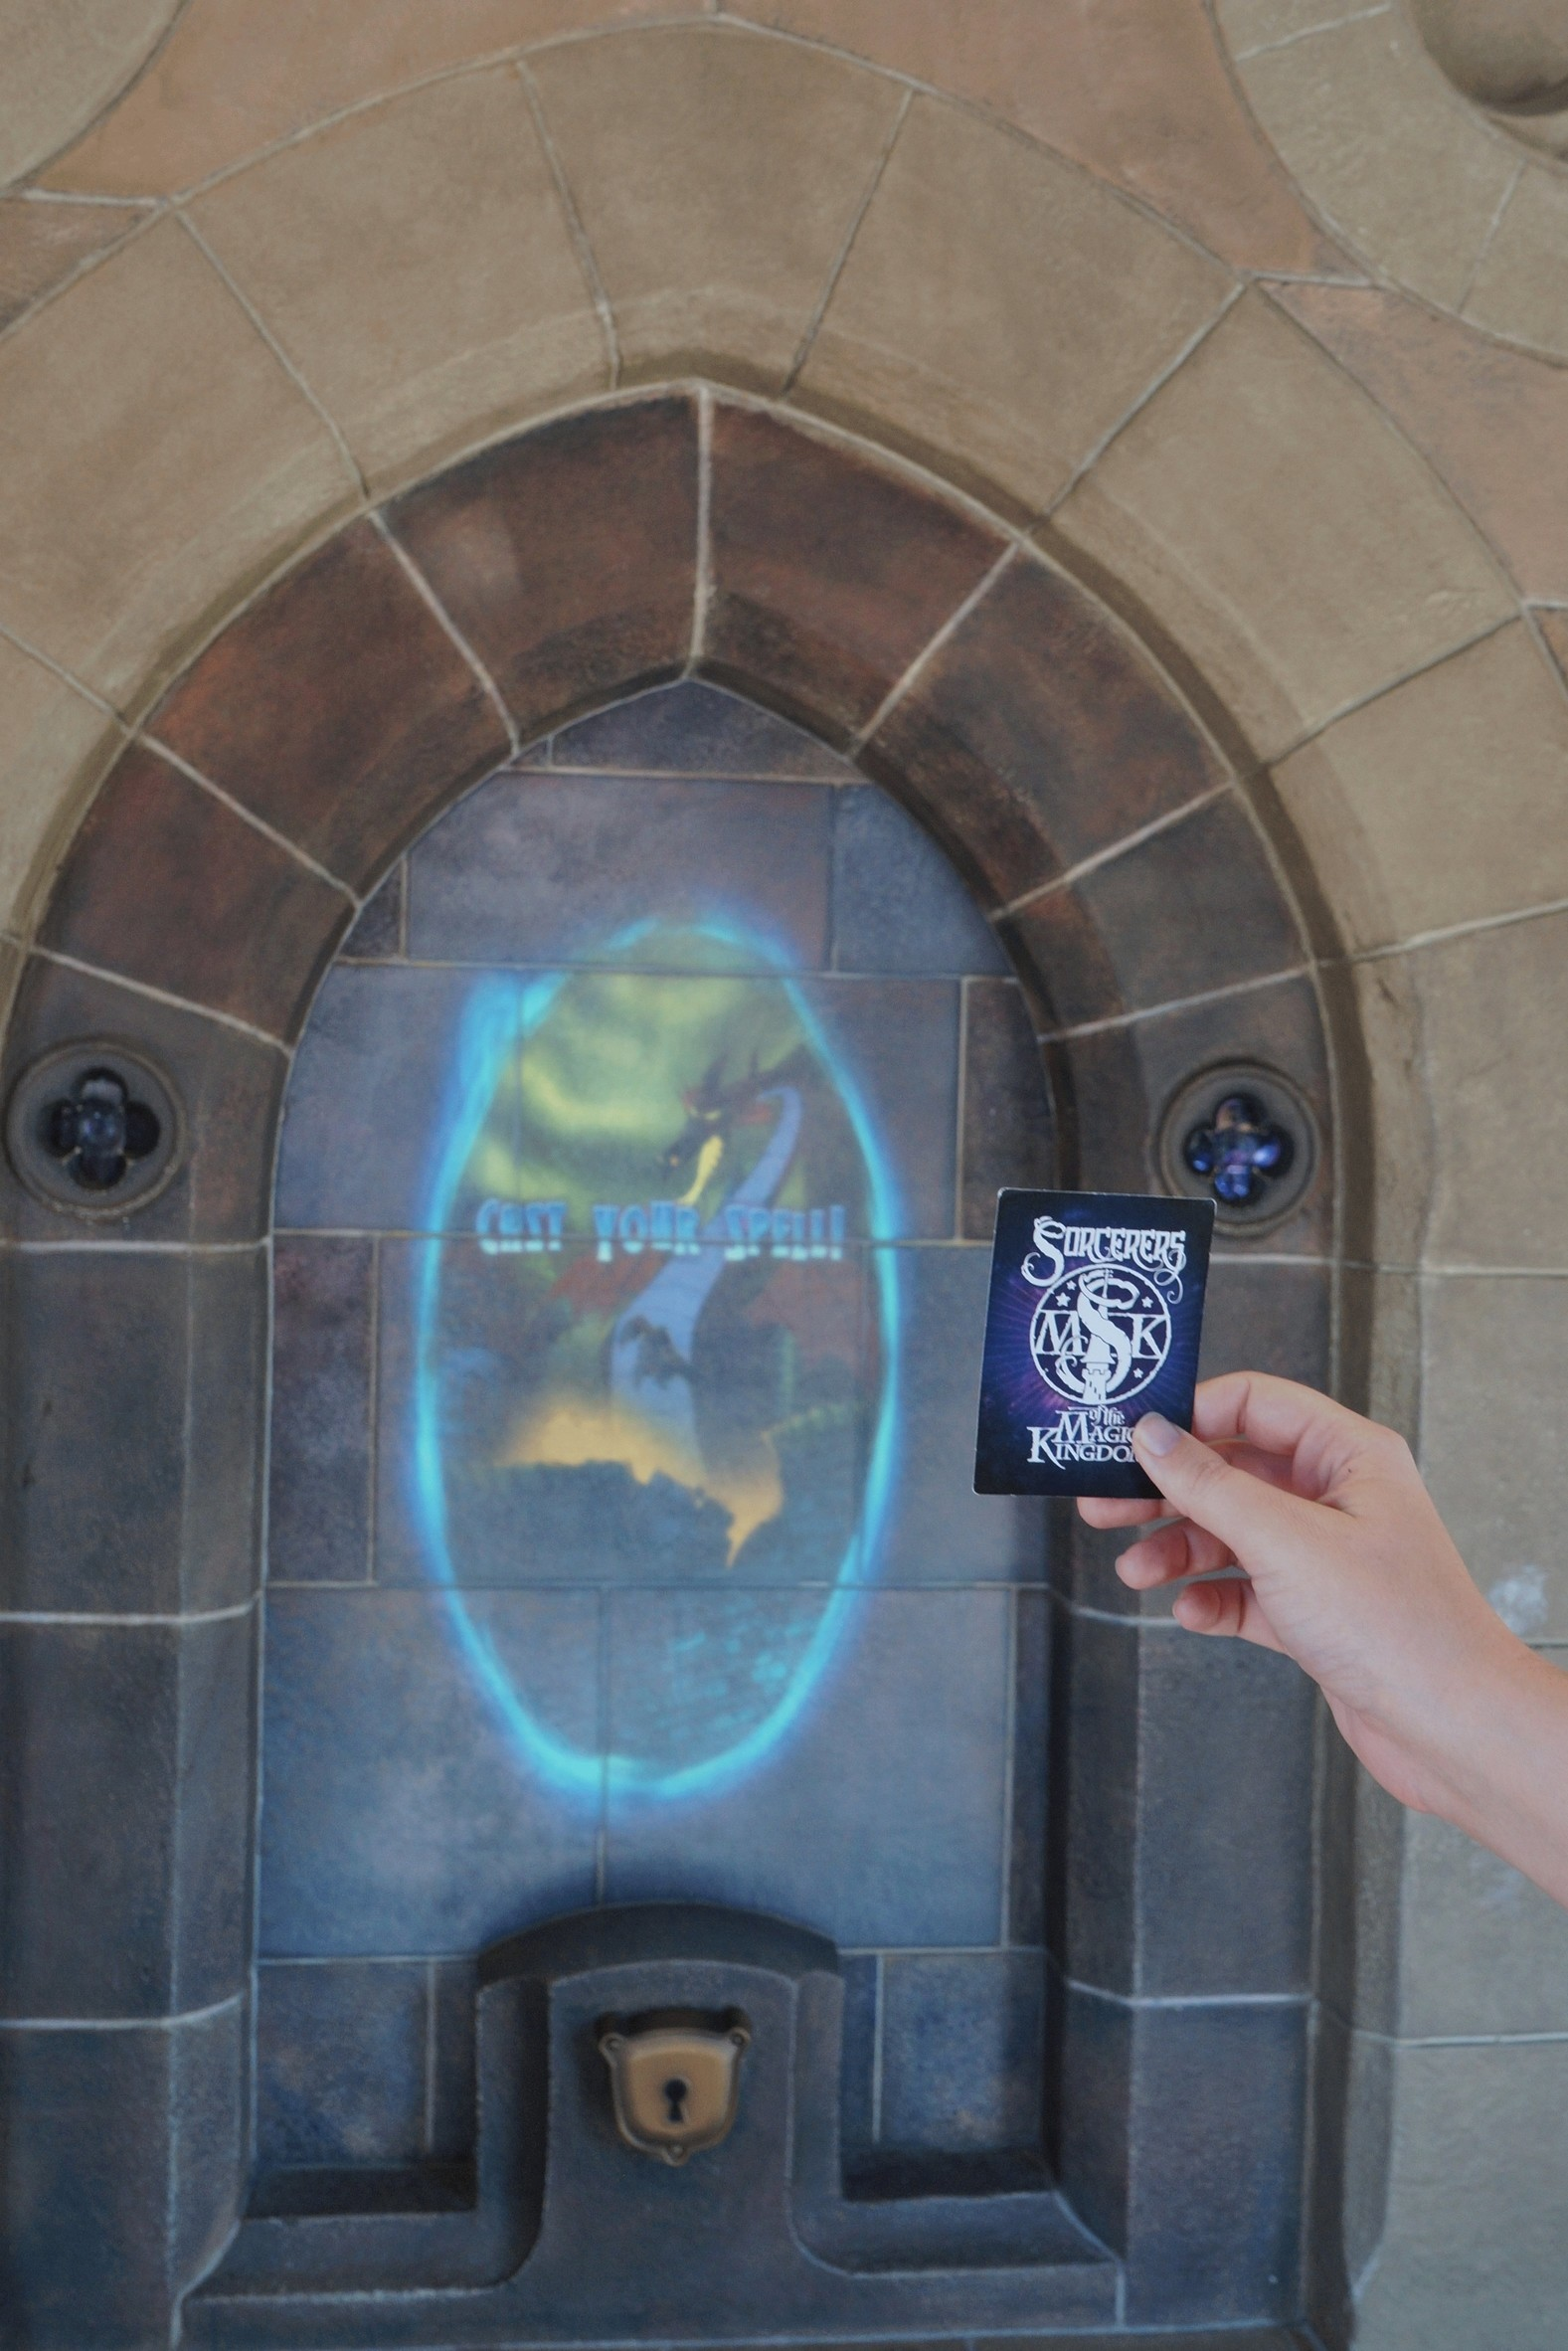 A hand holding up a card with a Sorcerers of the Magic Kingdom logo on the back, which is facing the camera. It is being held up to a kind of window inset into a stone wall with a gold lock at the bottom, which shows an animated picture of Maleficent in dragon form, with the words CAST YOUR SPELL written across it in blue. The image of Maleficent is encircled in the same bright blue colour, like a portal.